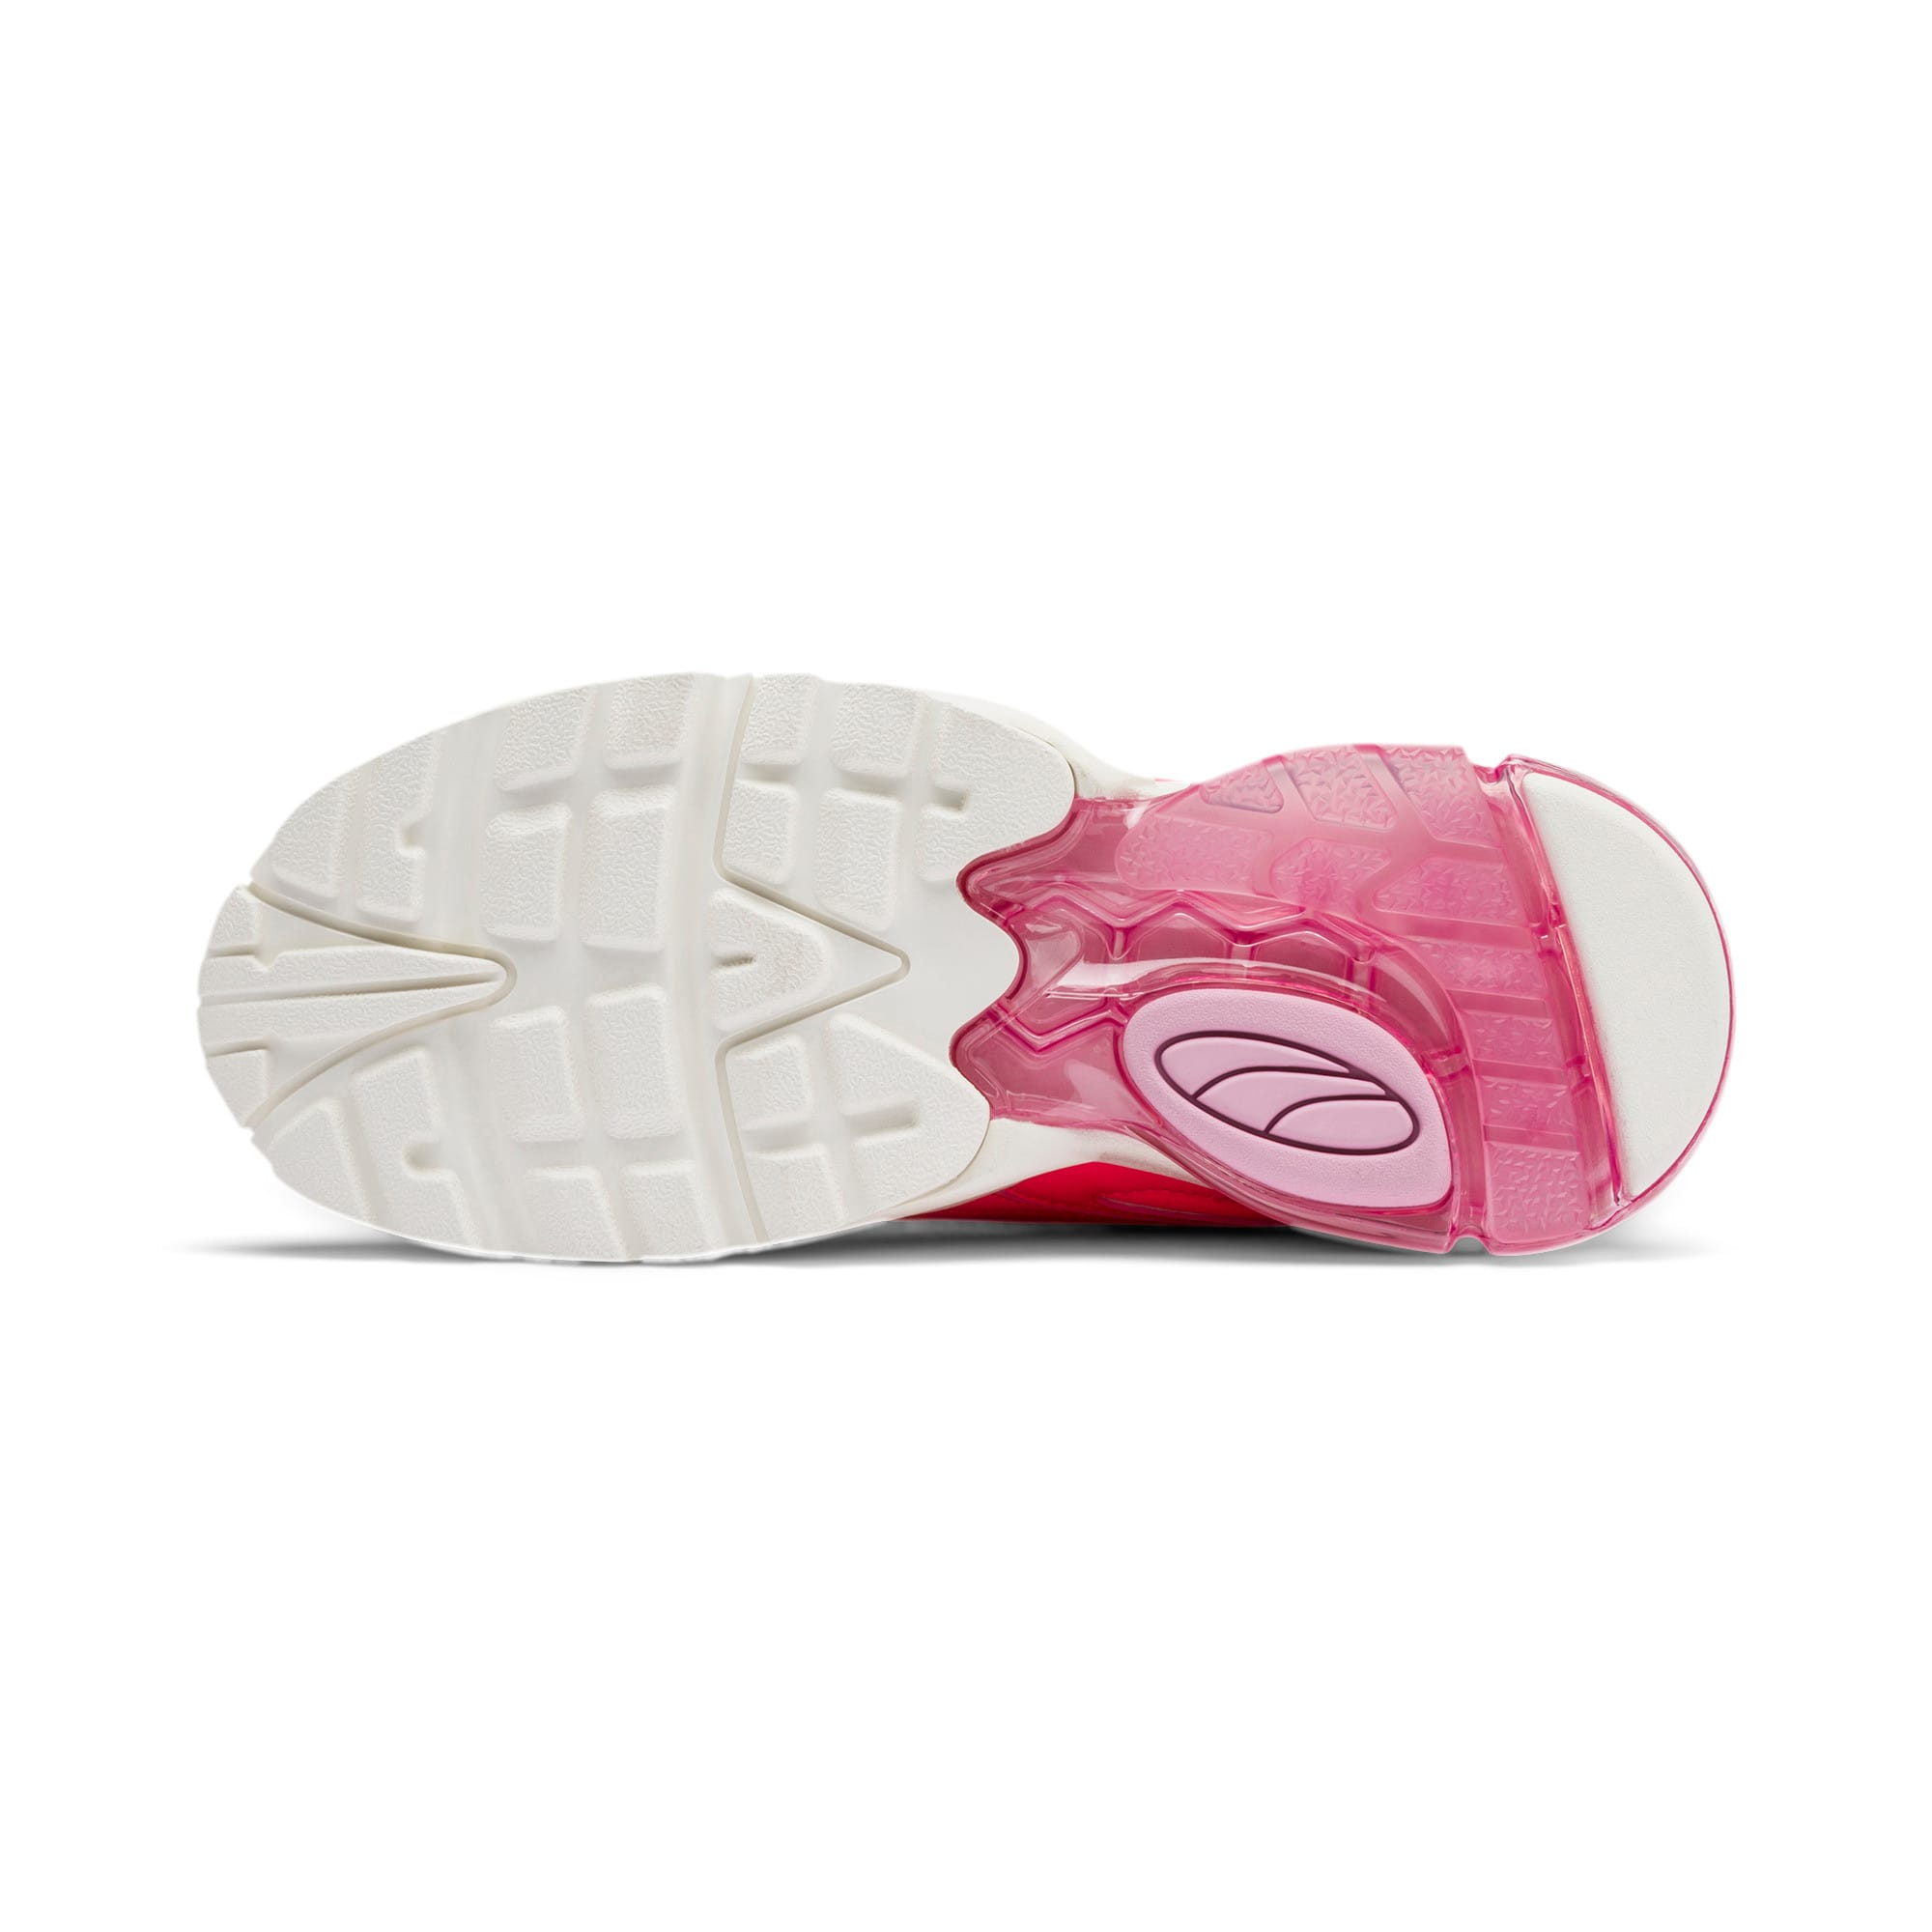 Thumbnail 5 of CELL Stellar Neon Women's Sneakers, Pink Alert-Heather, medium